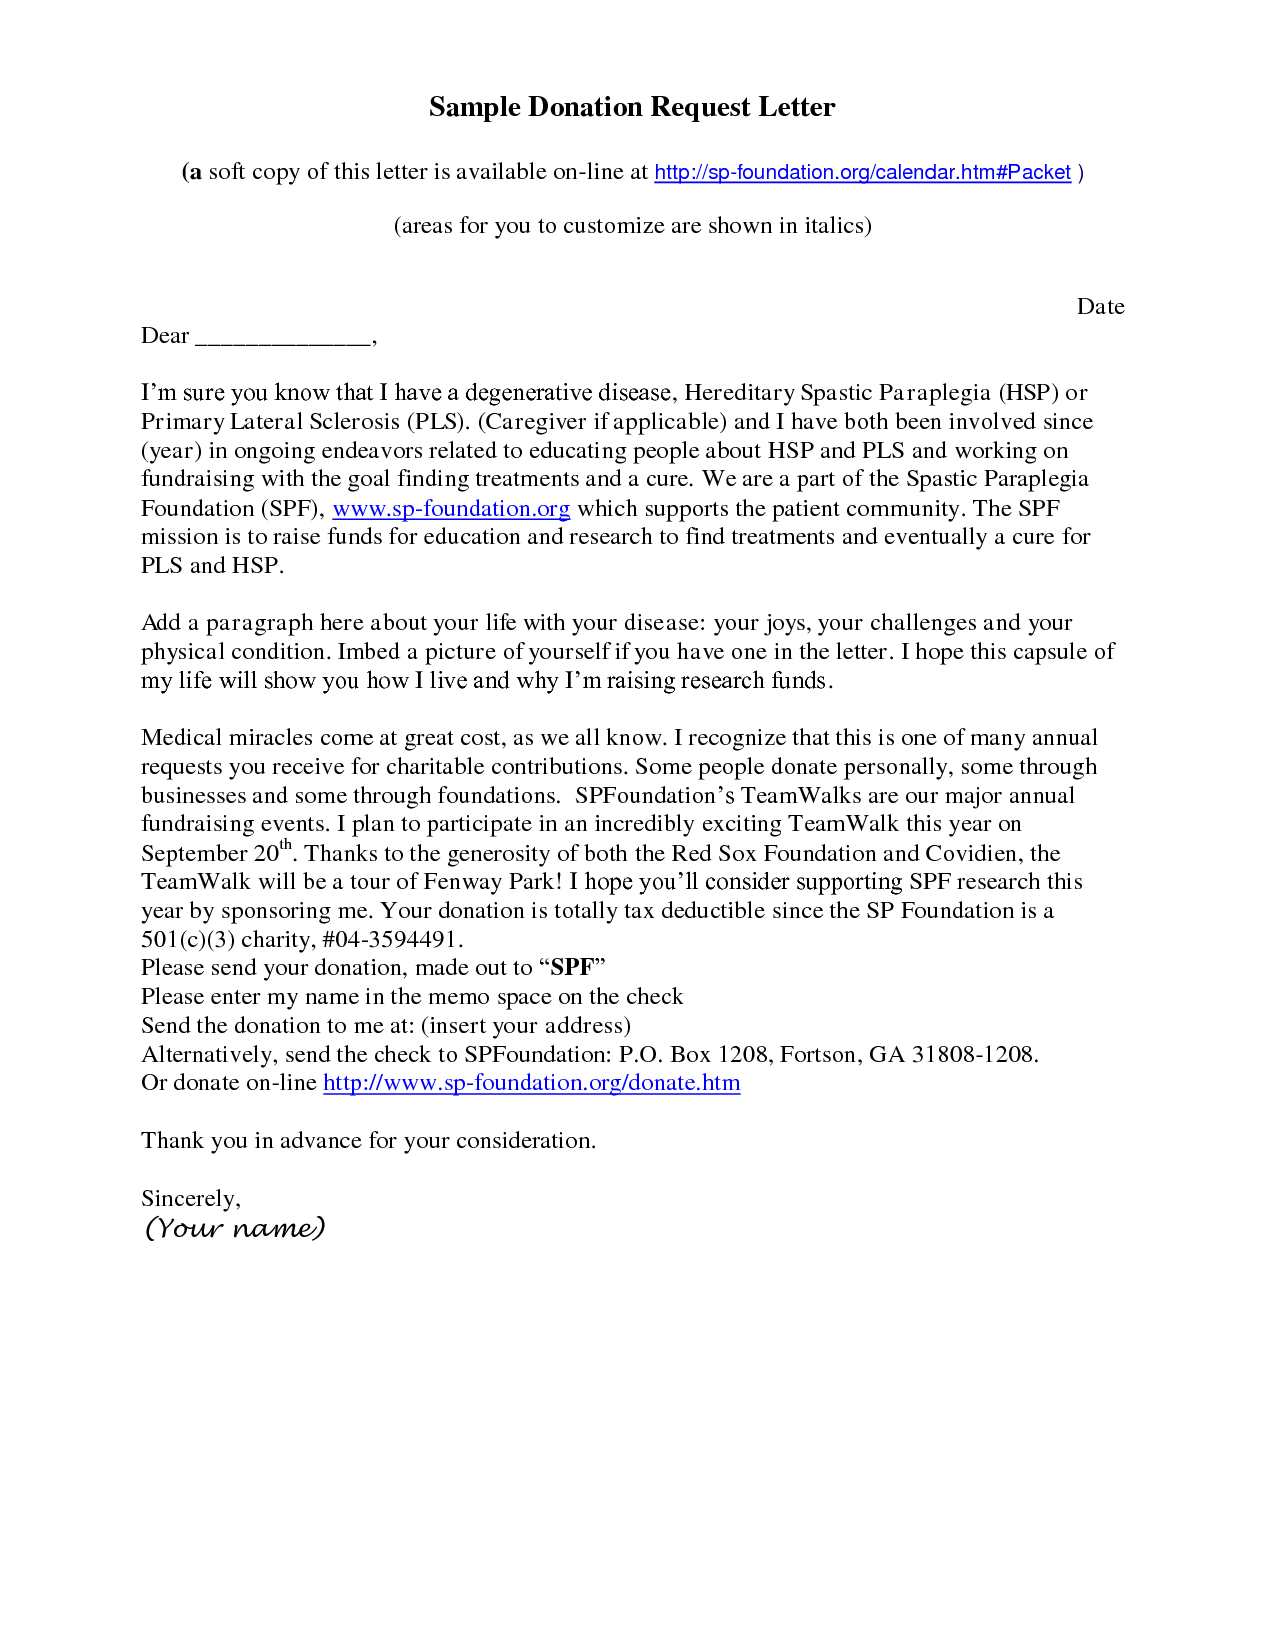 Fundraiser Request Letter Template - How to Write A solicitation Letter for Donations Choice Image